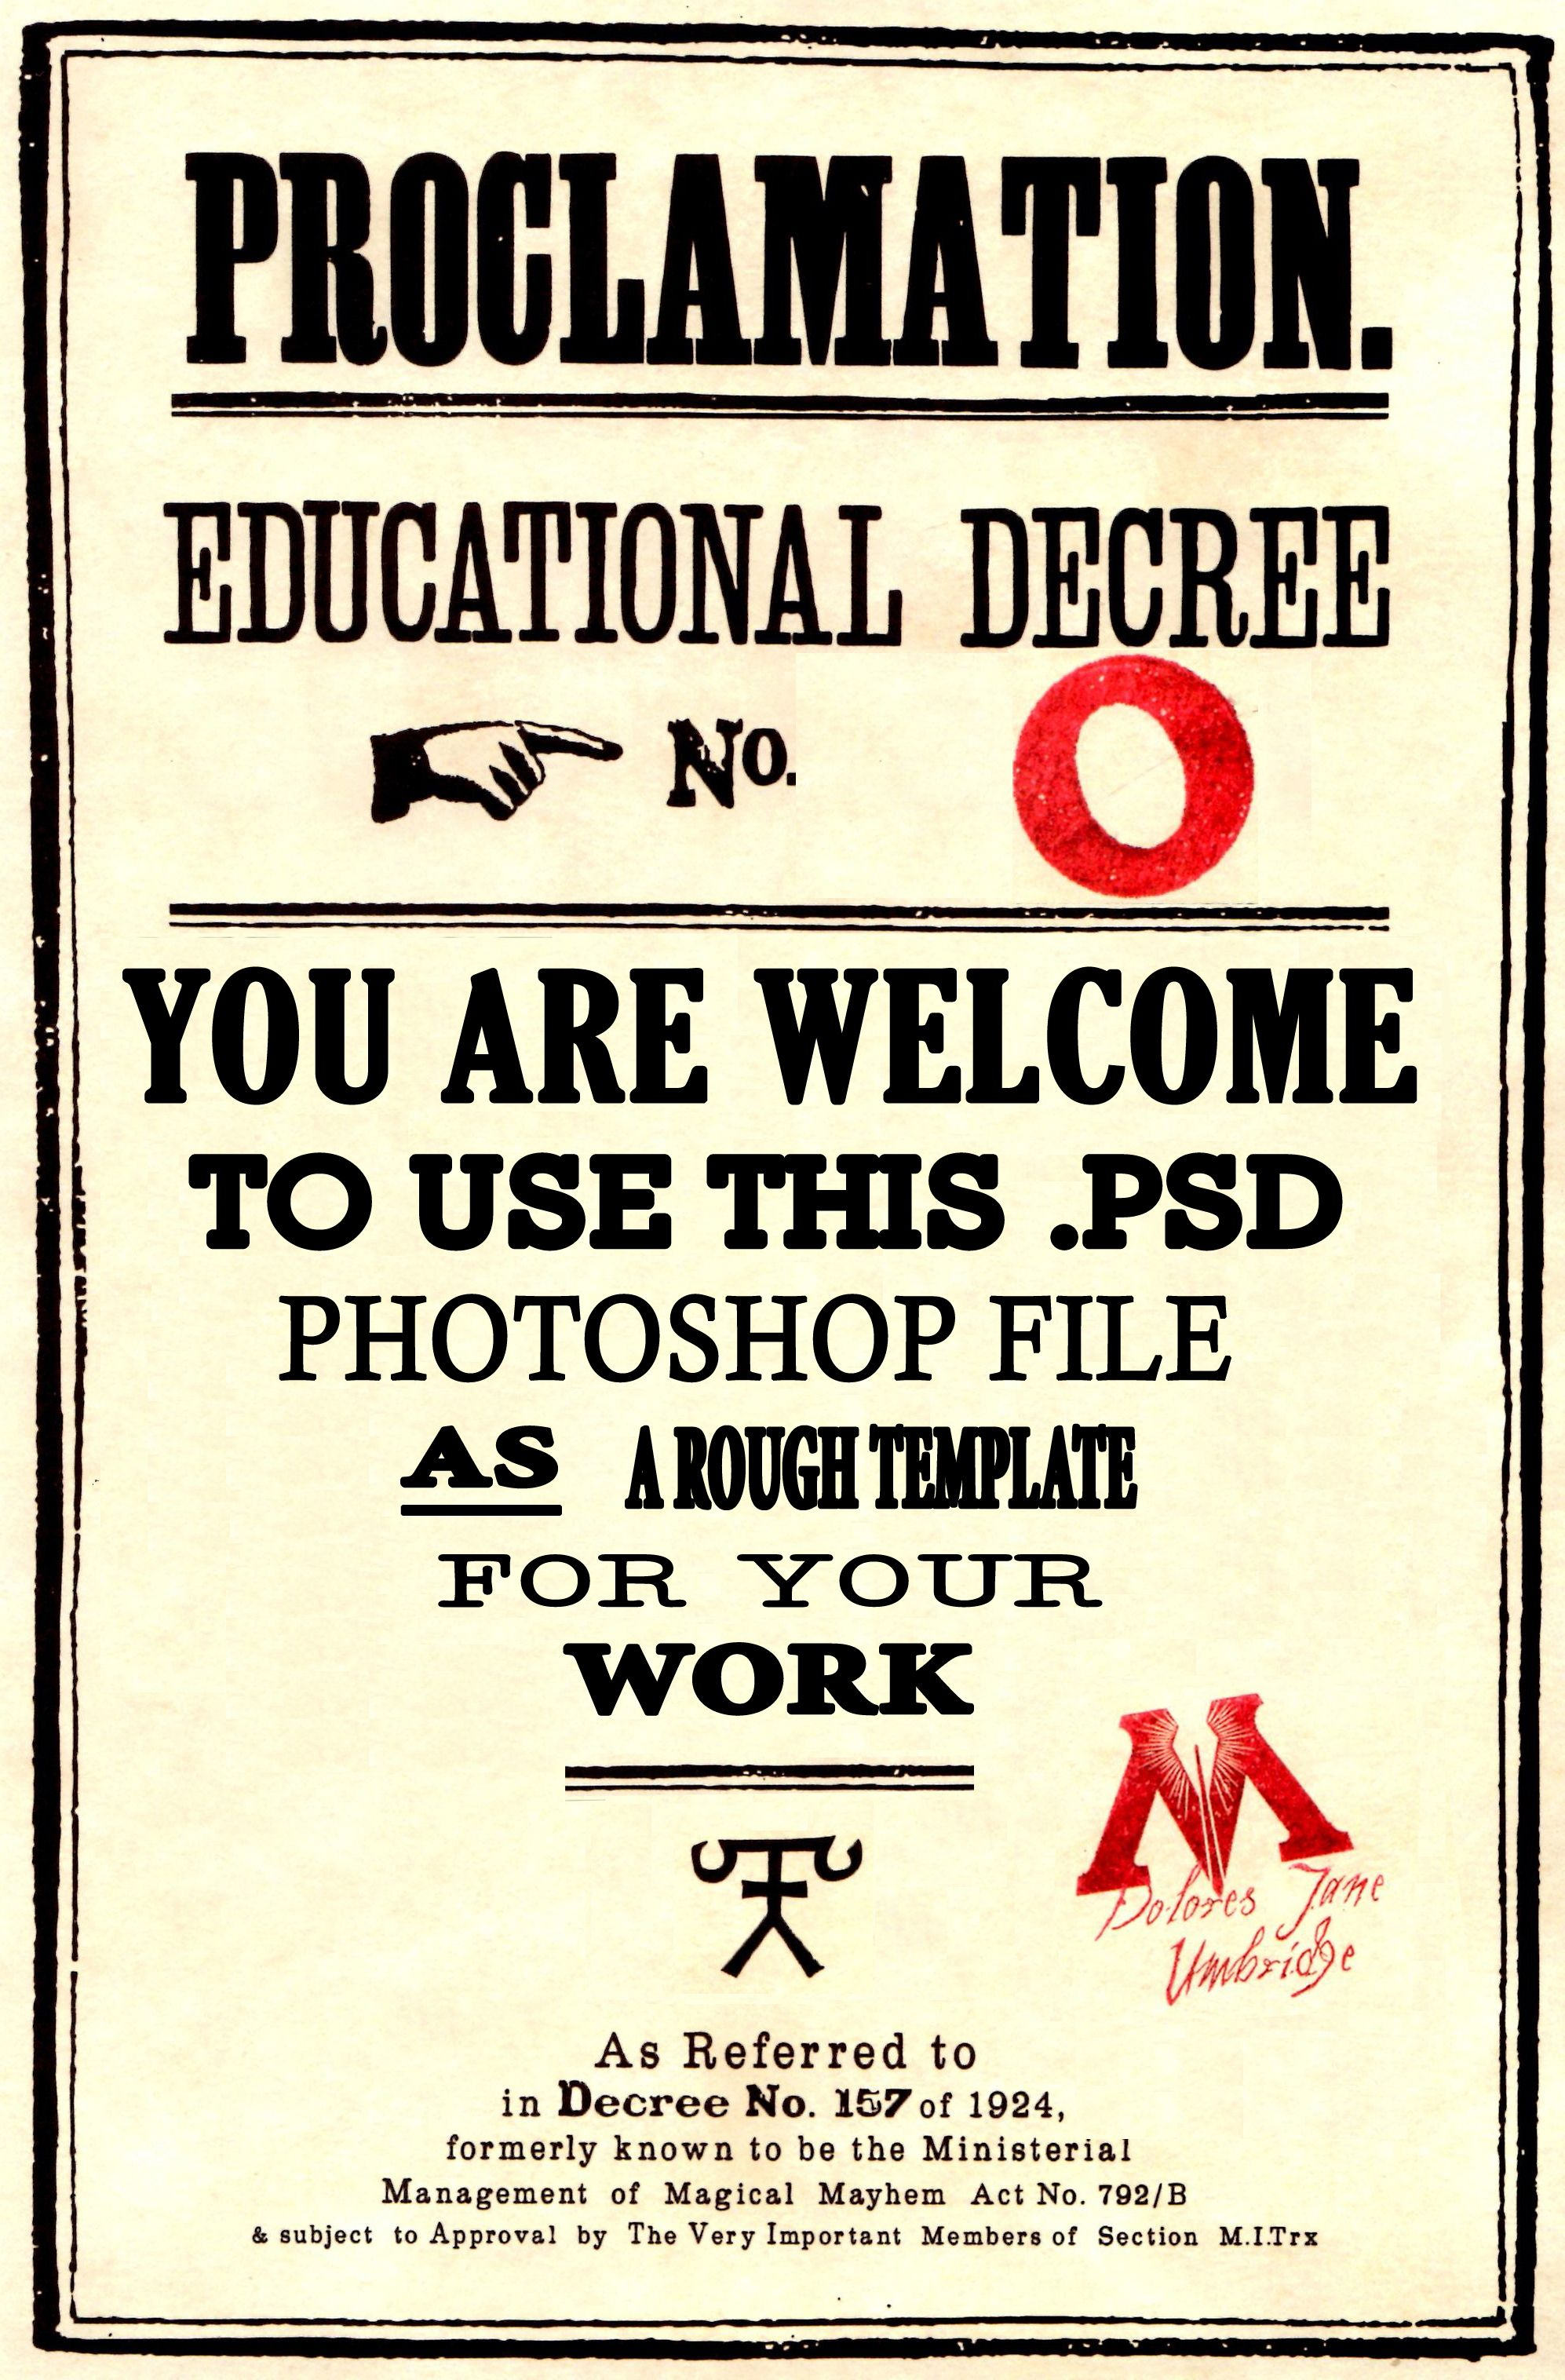 Poster Harry Potter A Imprimer Educational Decree Template From The Harry Potter Film Series A